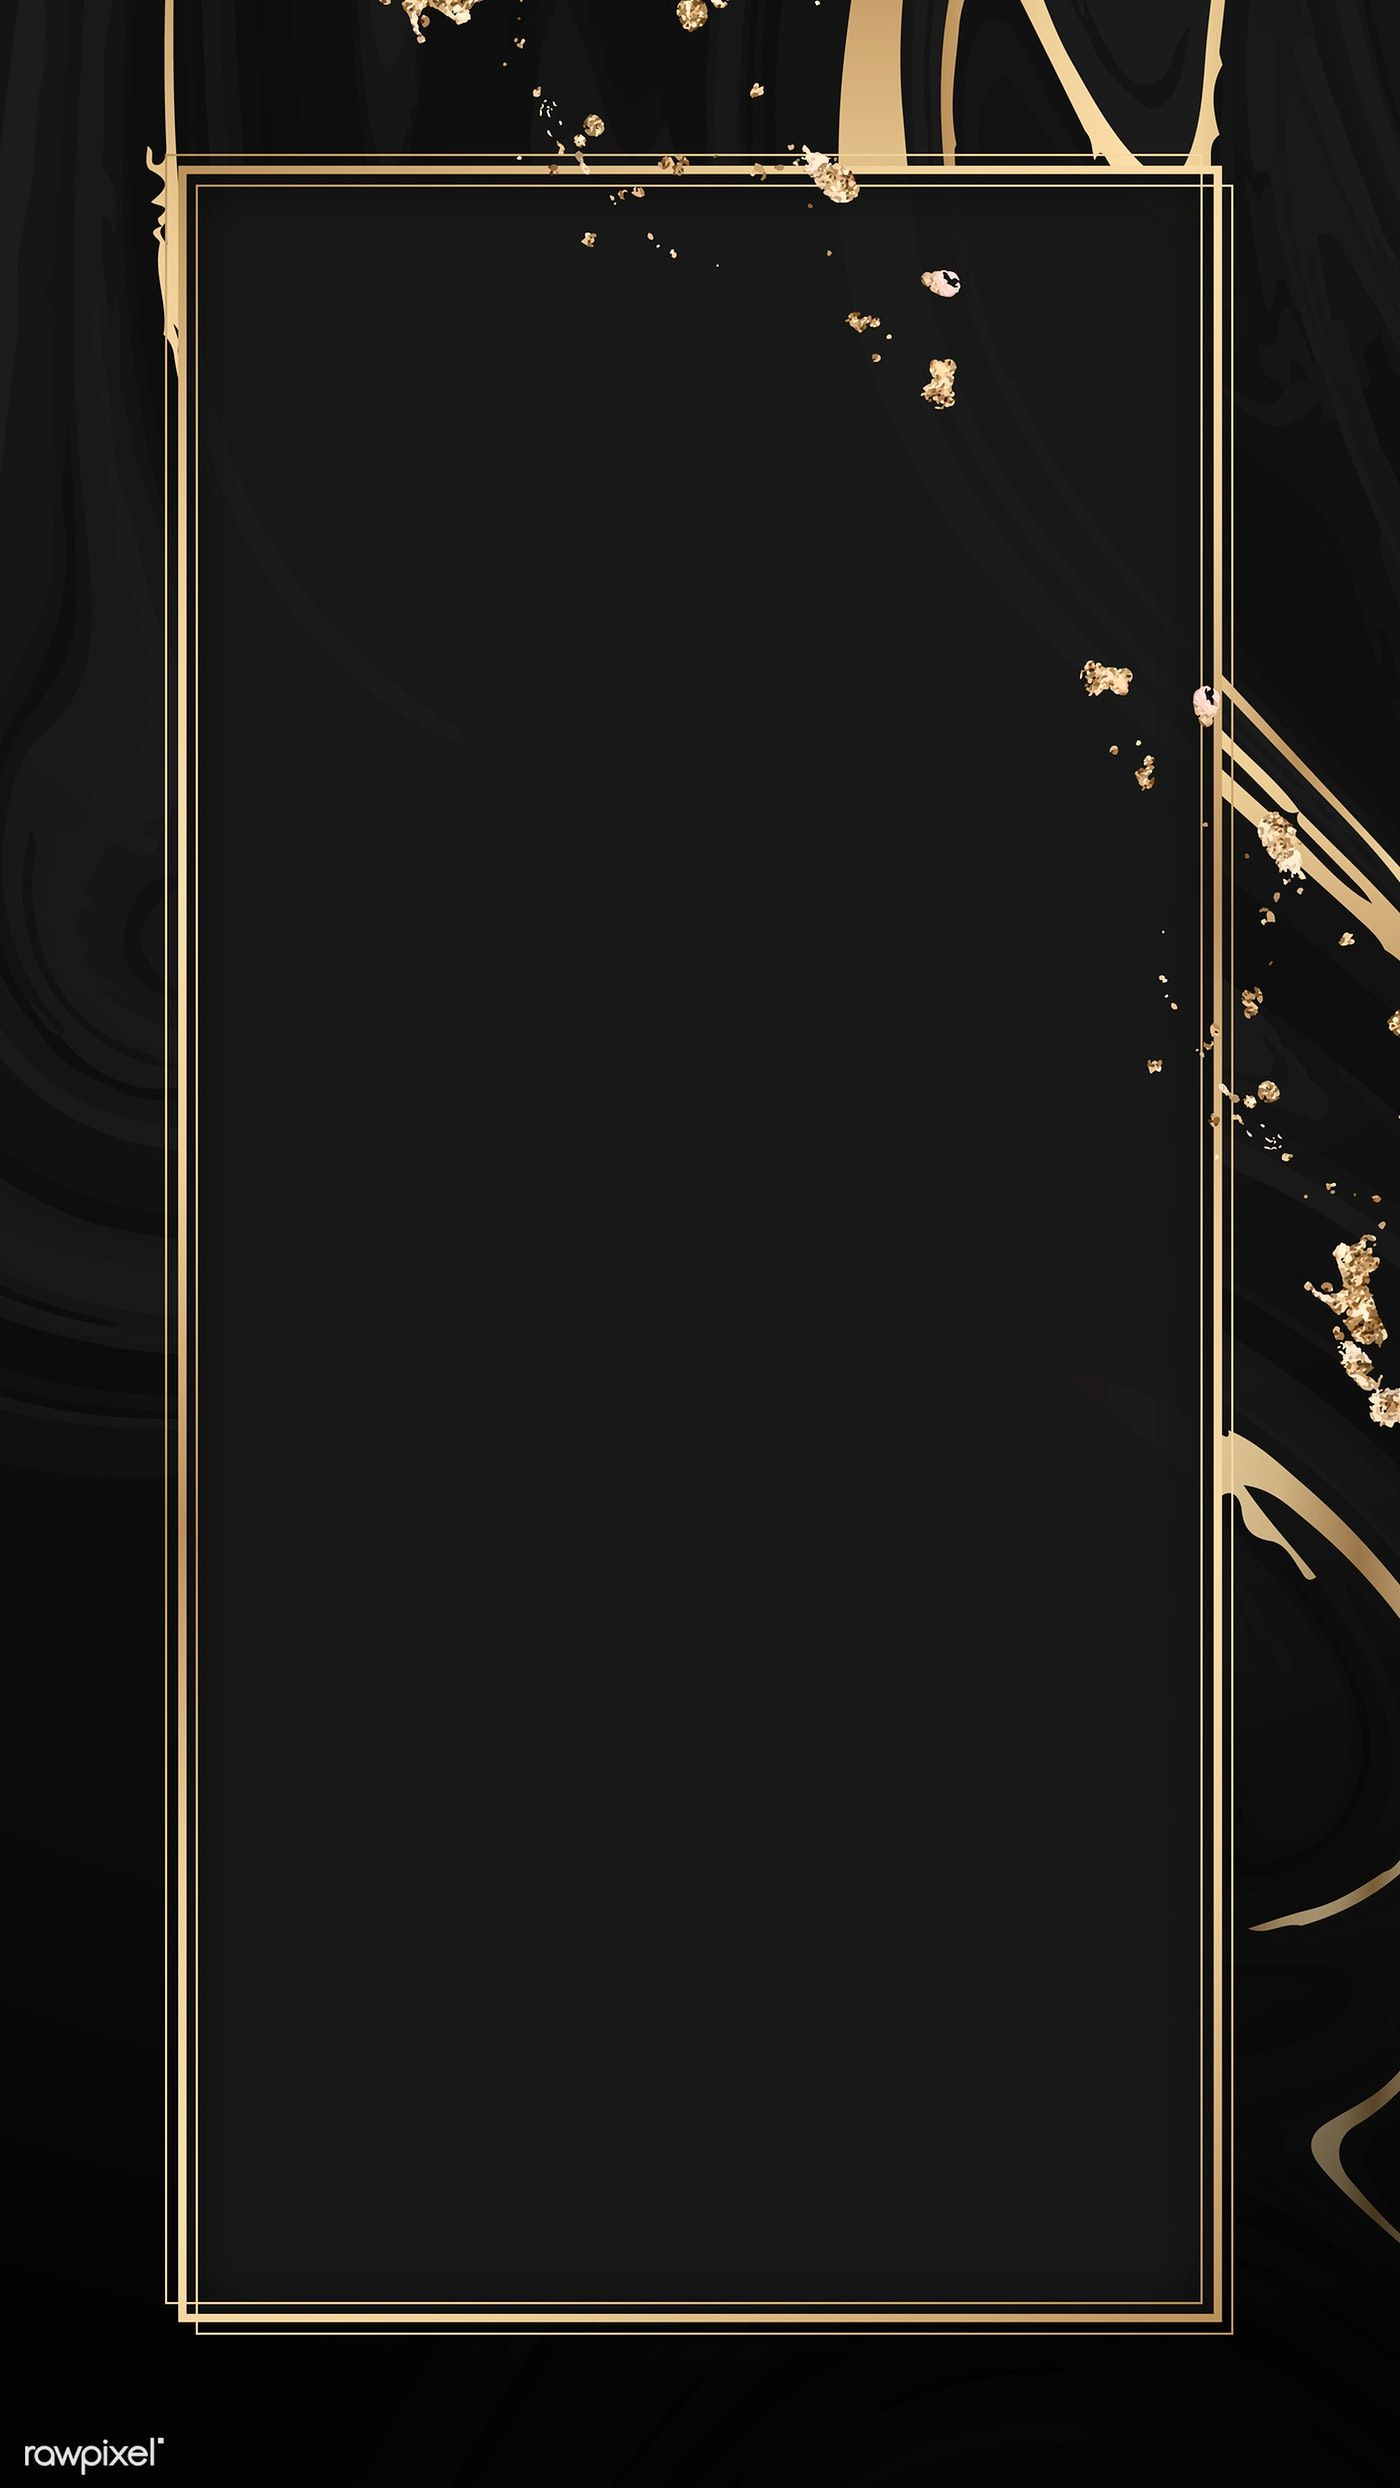 Gold Frame On A Black Fluid Patterned Mobile Phone Wallpaper Premium Image By Rawpixel Com Kapp Sparkle Wallpaper Phone Wallpaper Patterns Framed Wallpaper